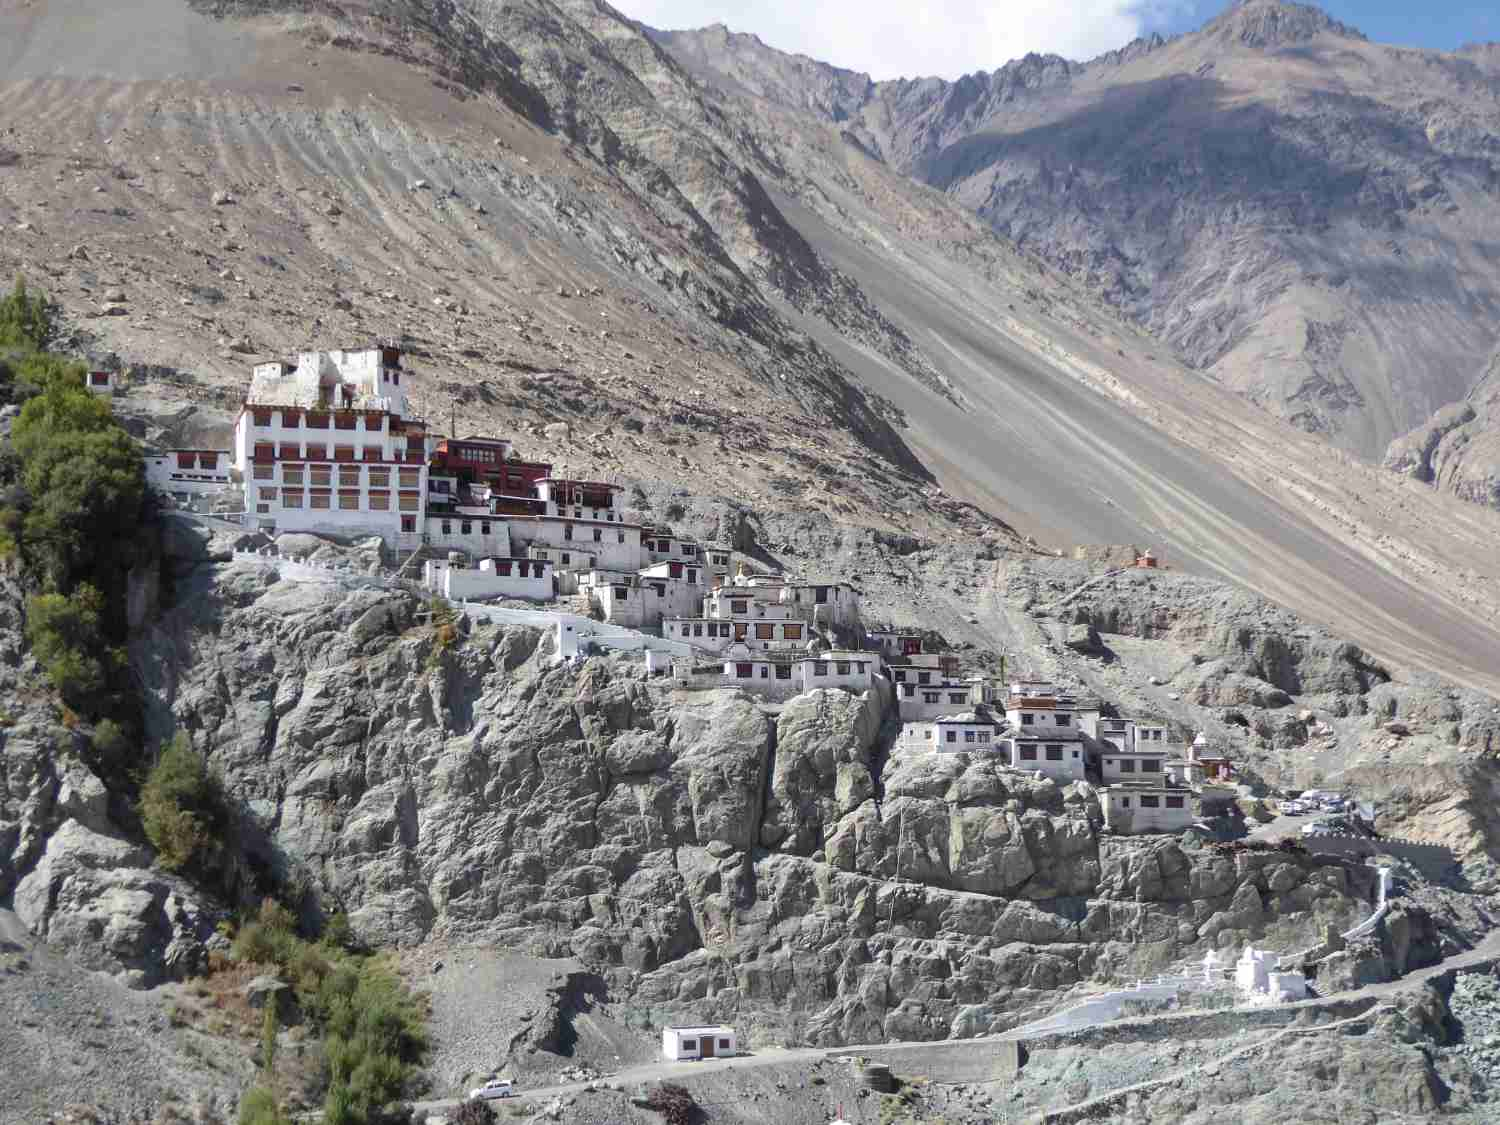 Diskit Gompa - the monastery complex is hardly recognizable from afar in the middle of the wasteland